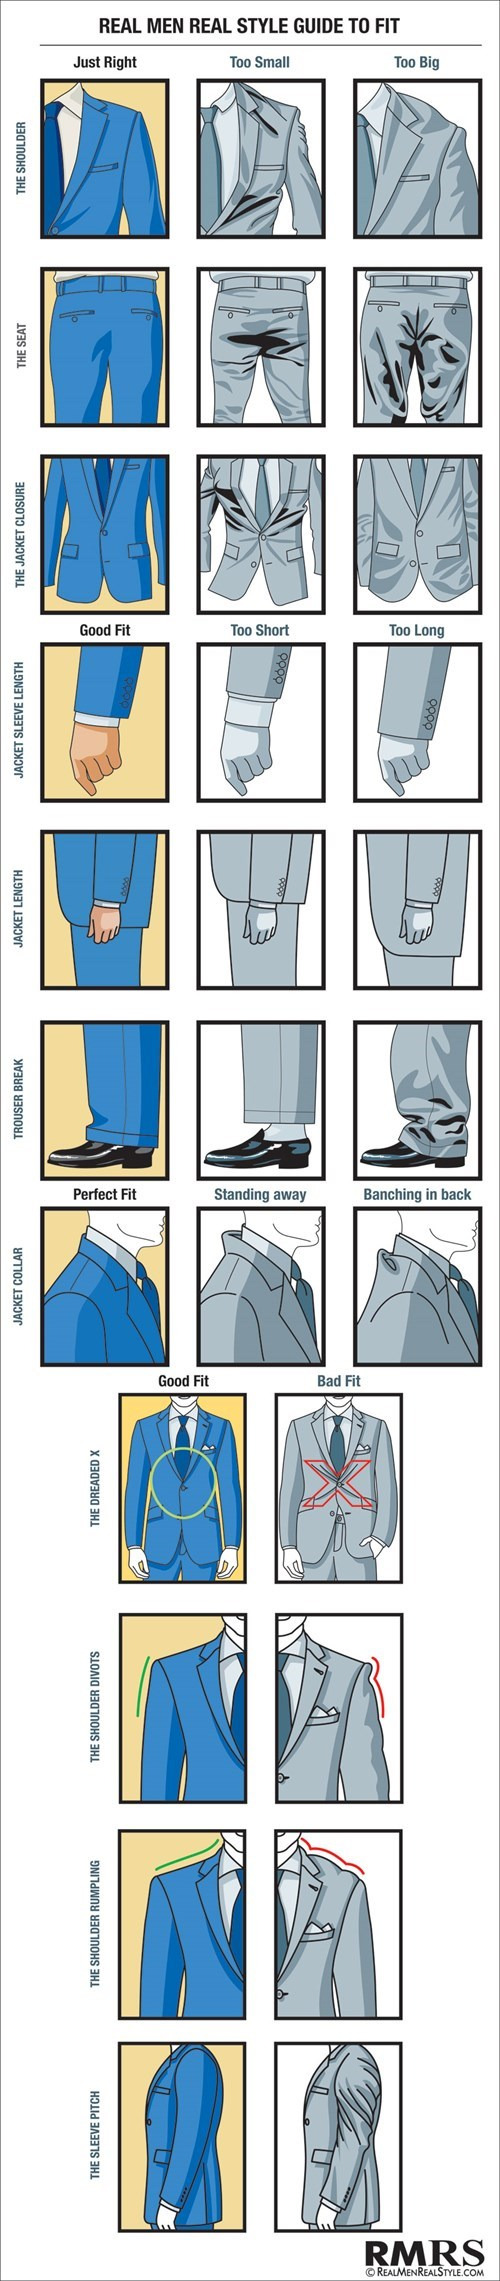 fashion guide suit